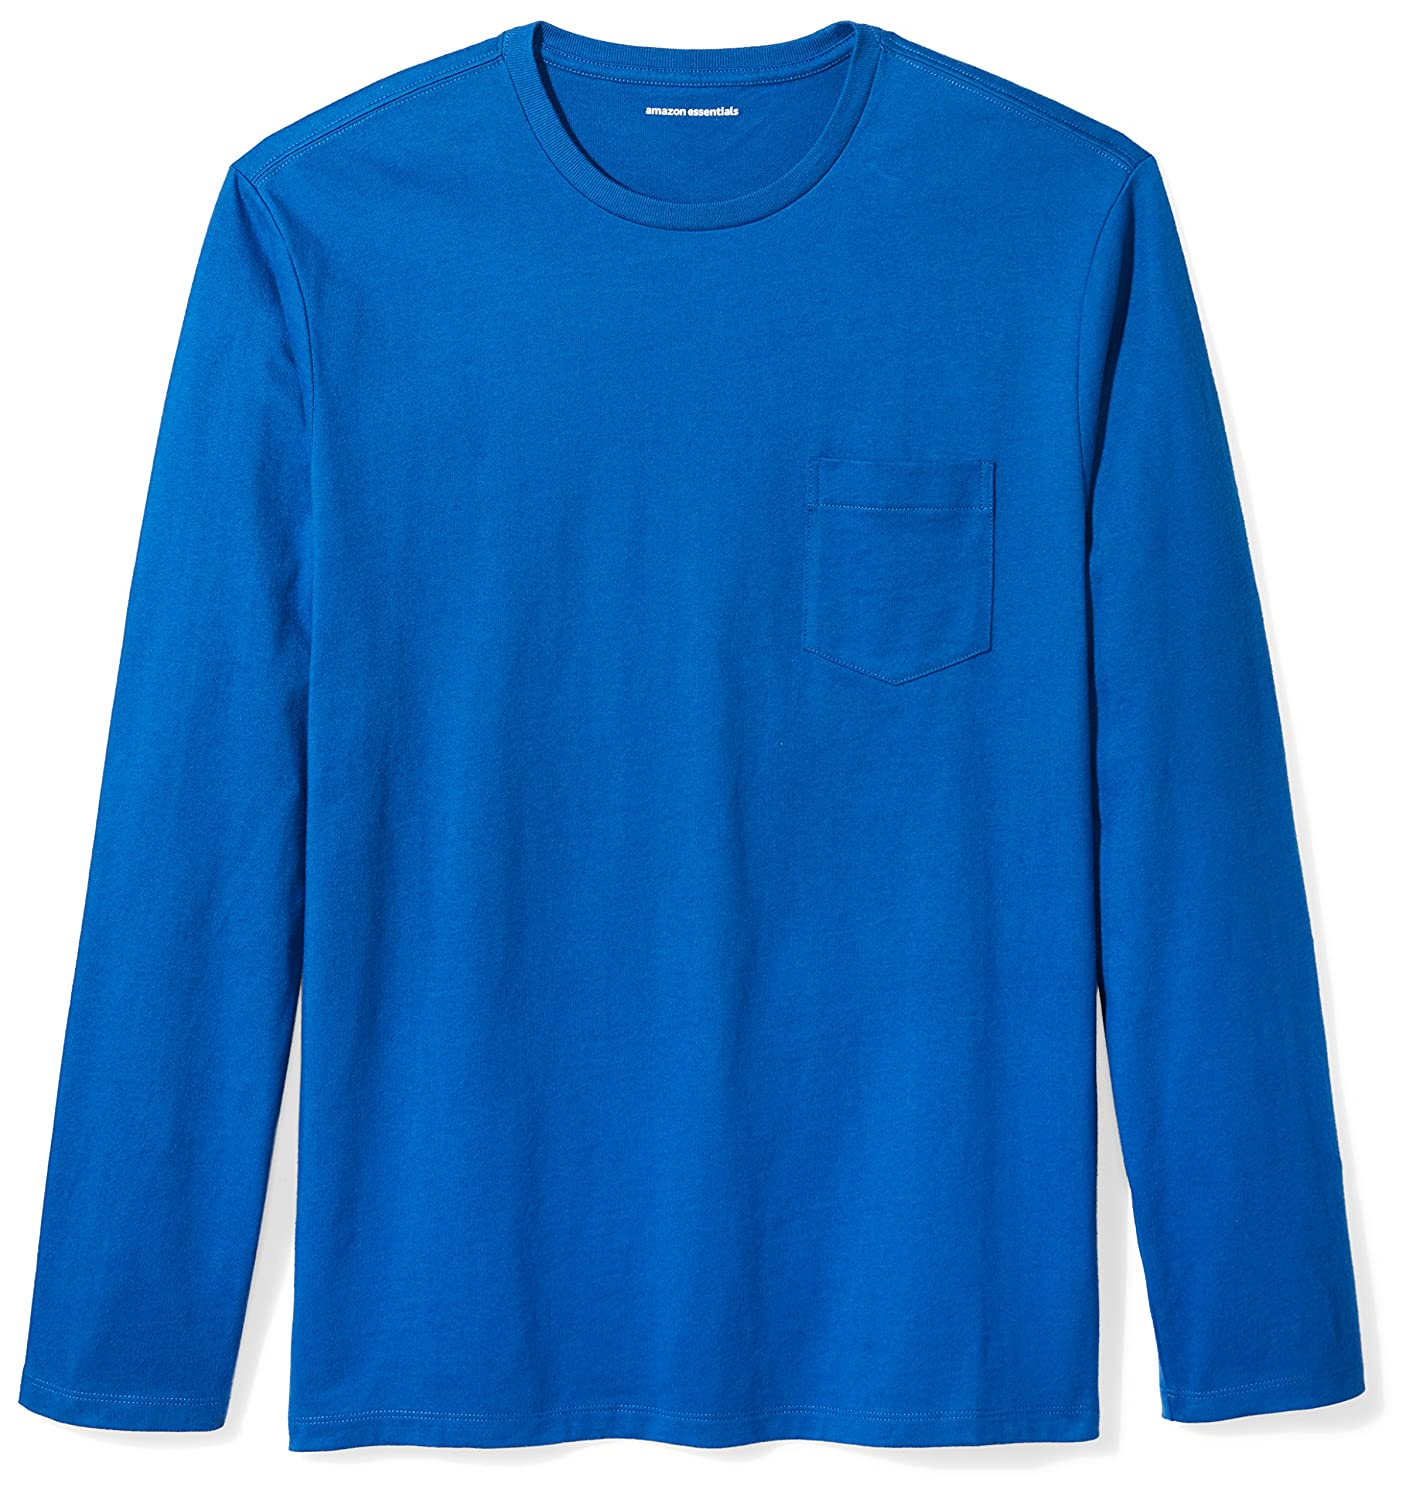 Amazon Essentials Men's Regular-Fit Long-Sleeve Pocket T-Shirt MAE45002SP18